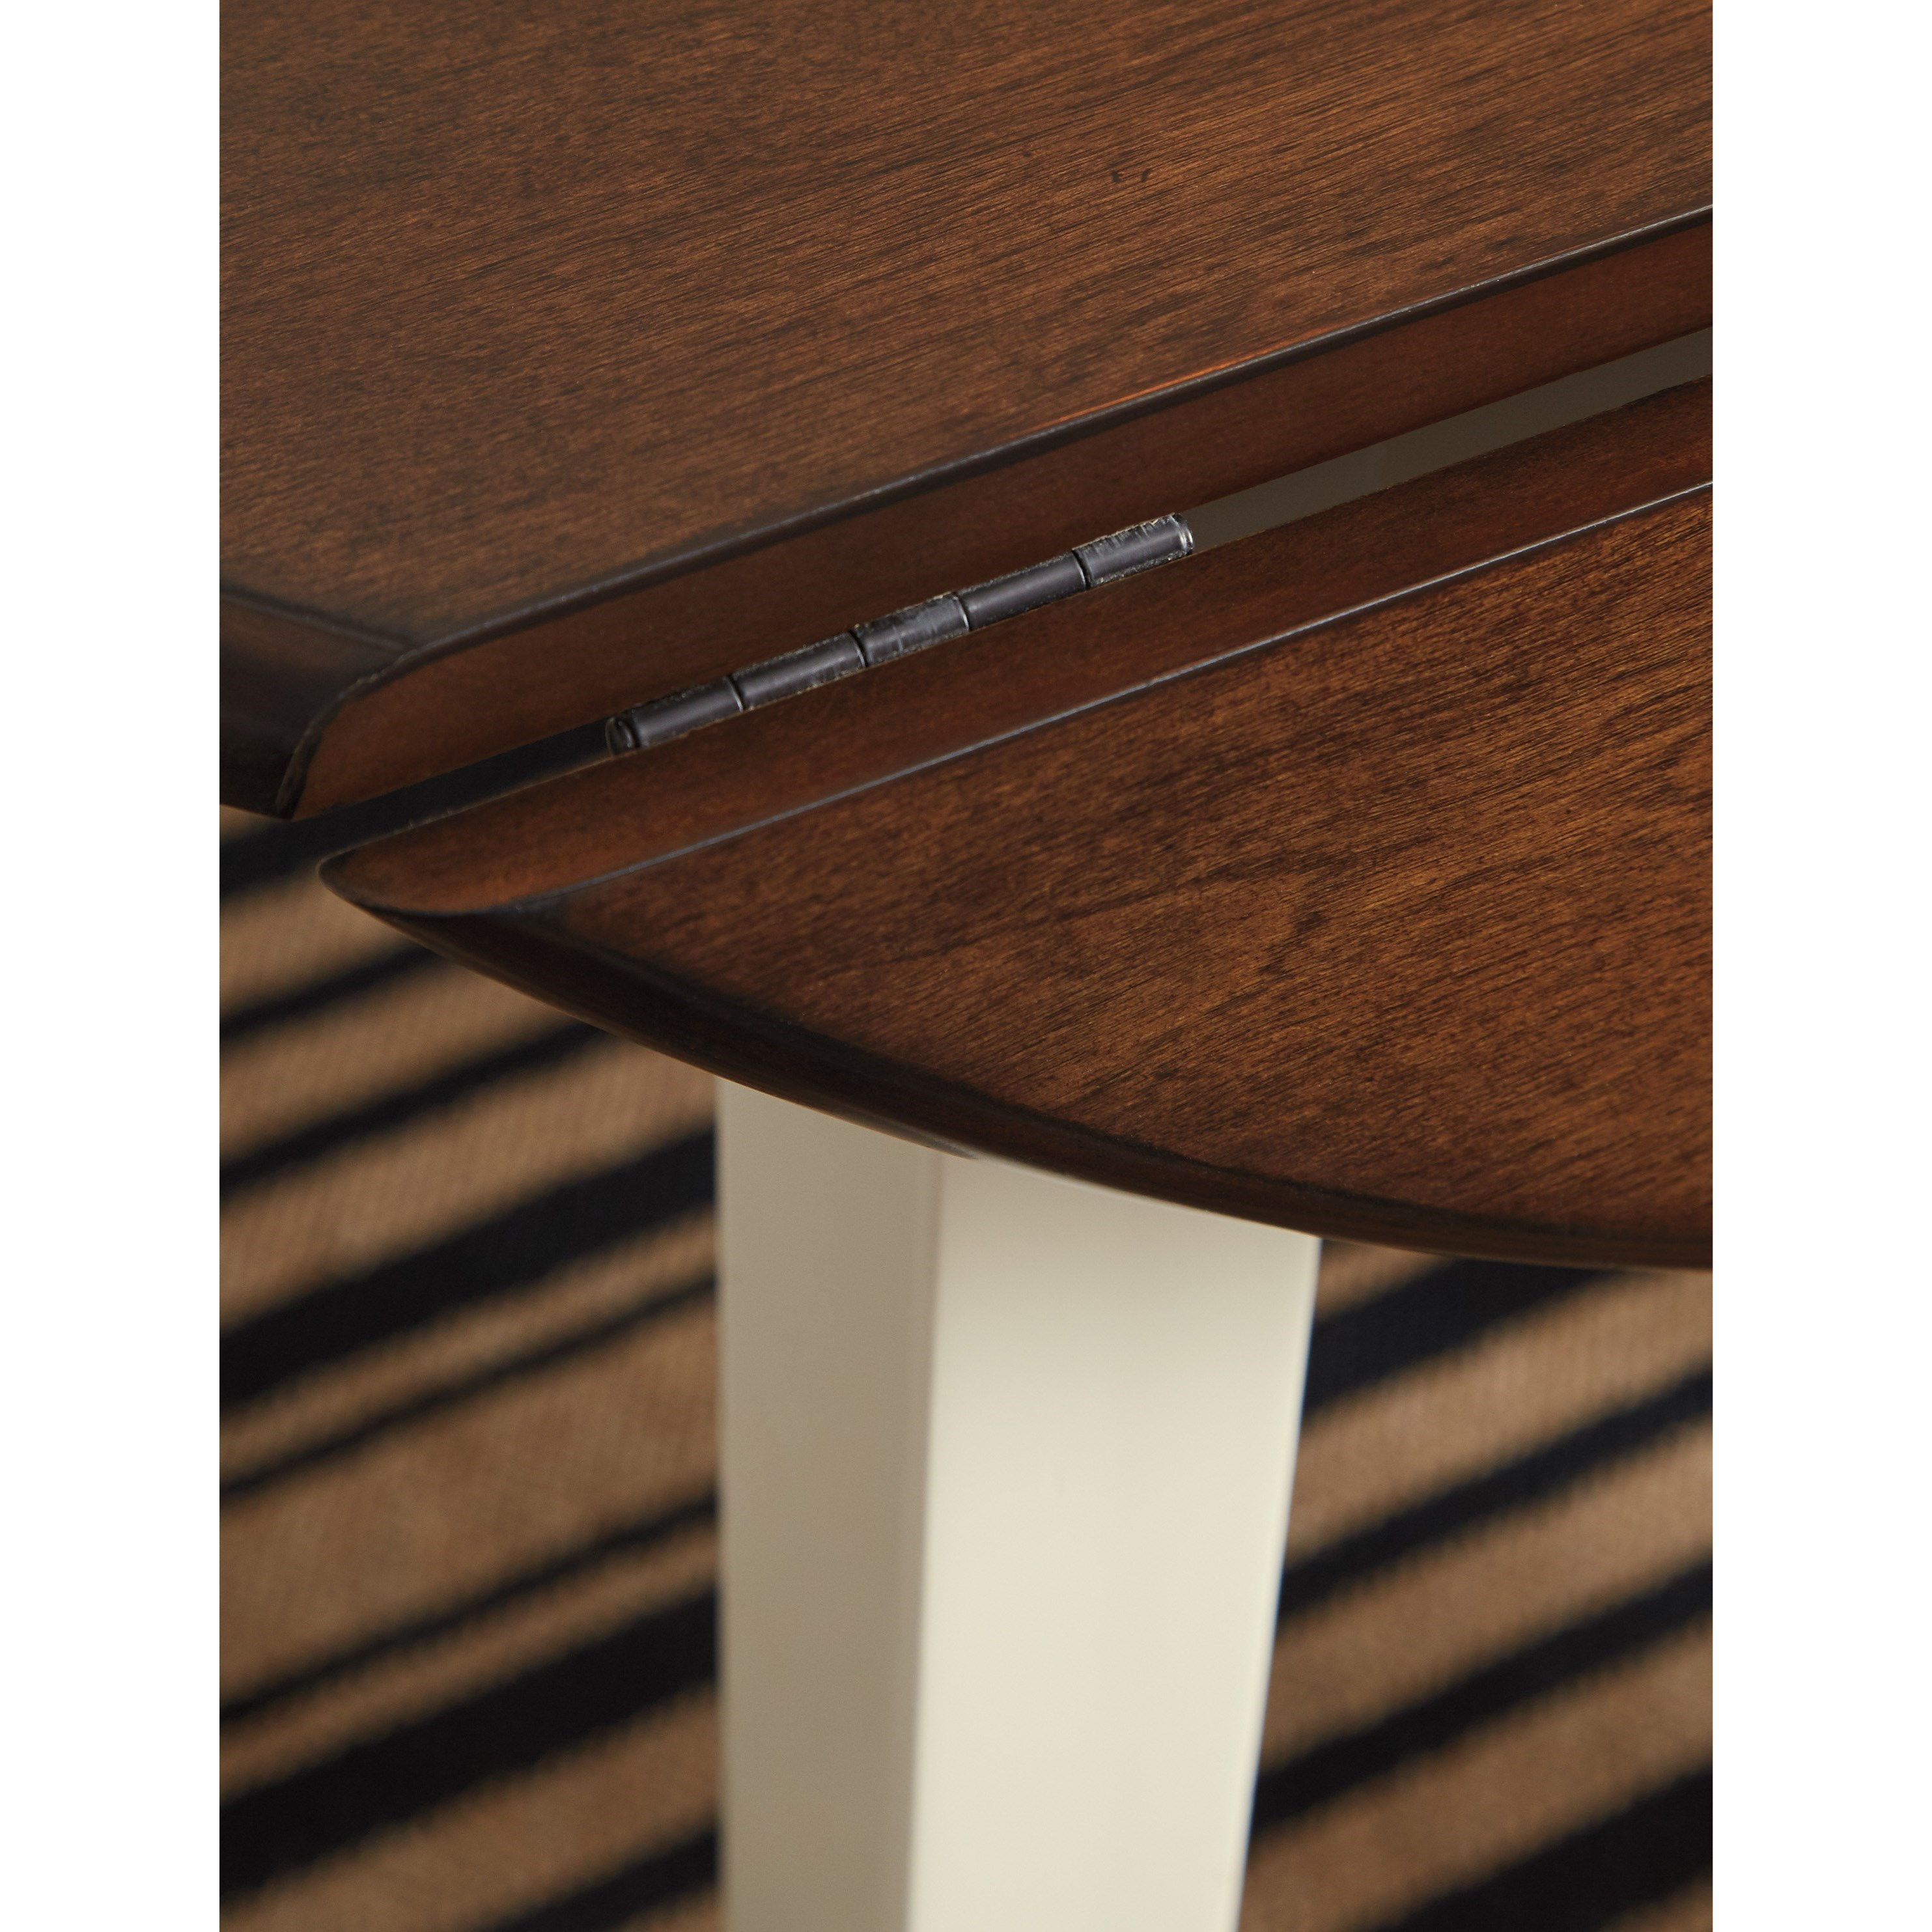 Ashley Furniture Danville Va: Two-Tone Finish Round Dining Room Drop Leaf Table By